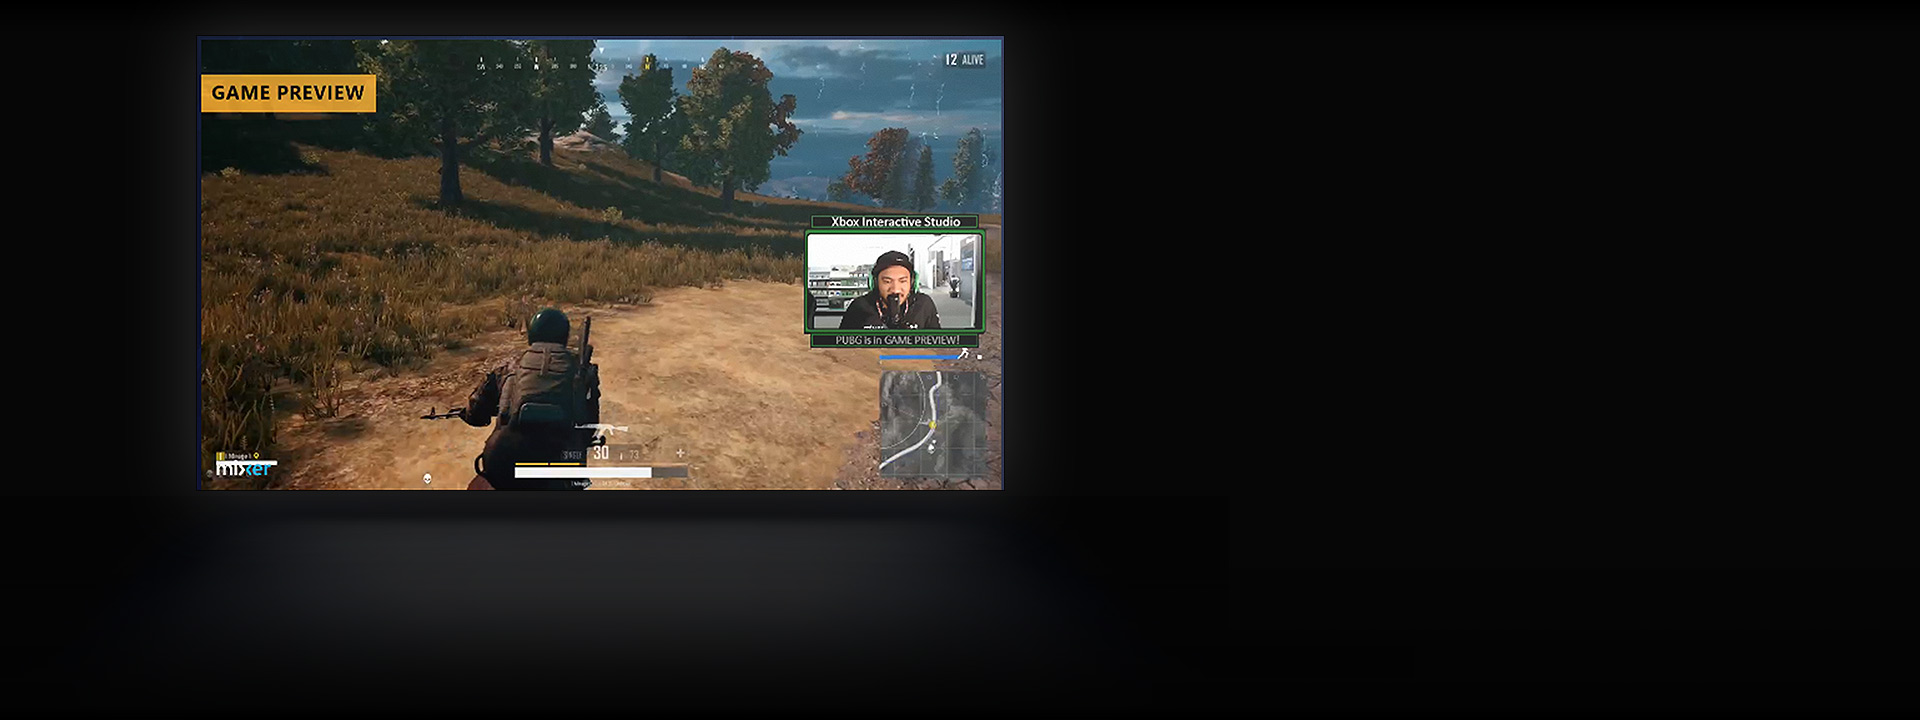 Televisiescherm met een PlayerUnknown's Battlegrounds Mixerstream